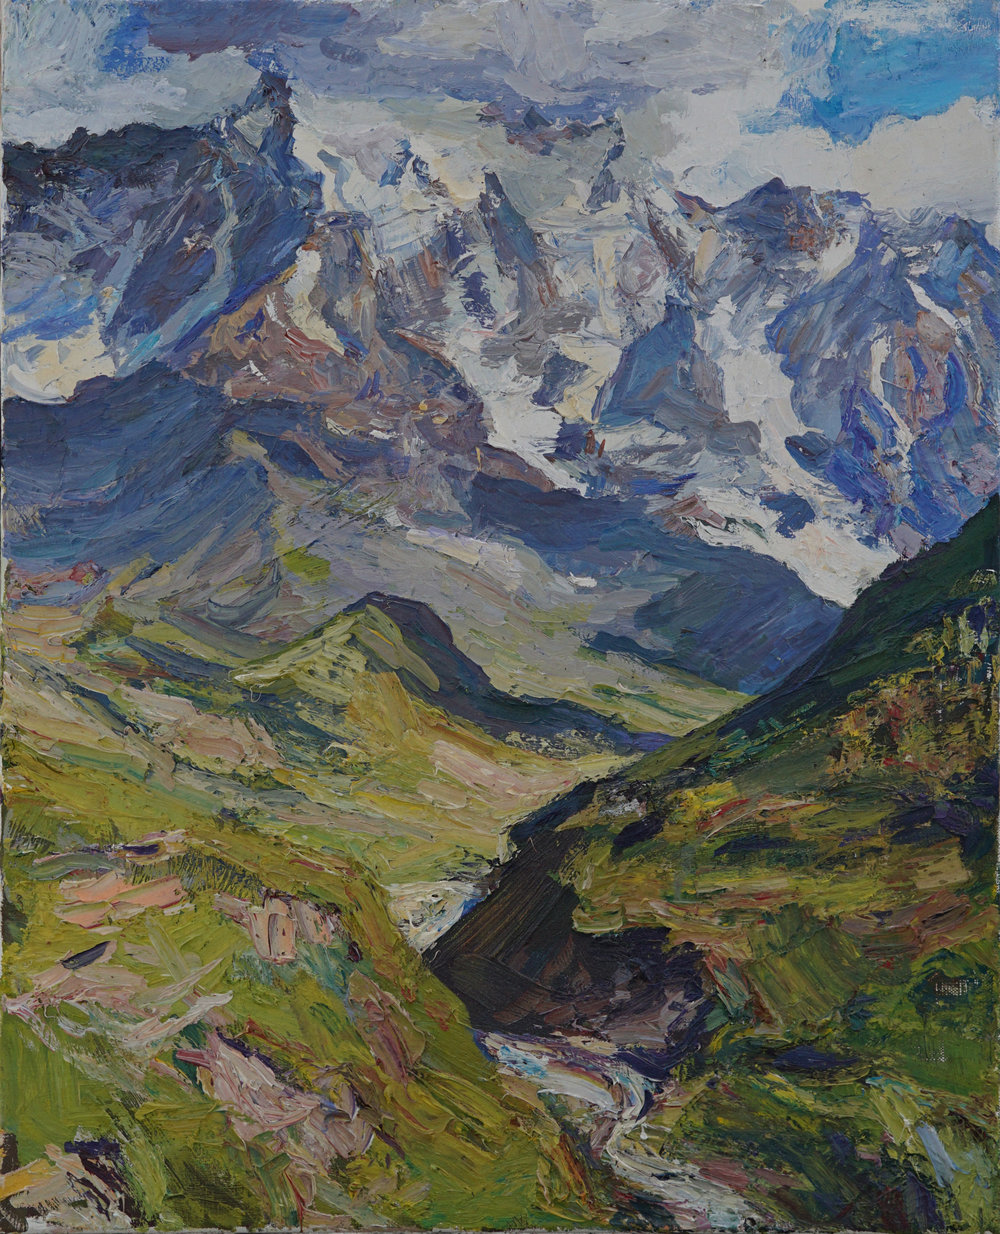 Georgian Caucasus  25 1 4 x 20 1 2  Oil, Linen.jpg